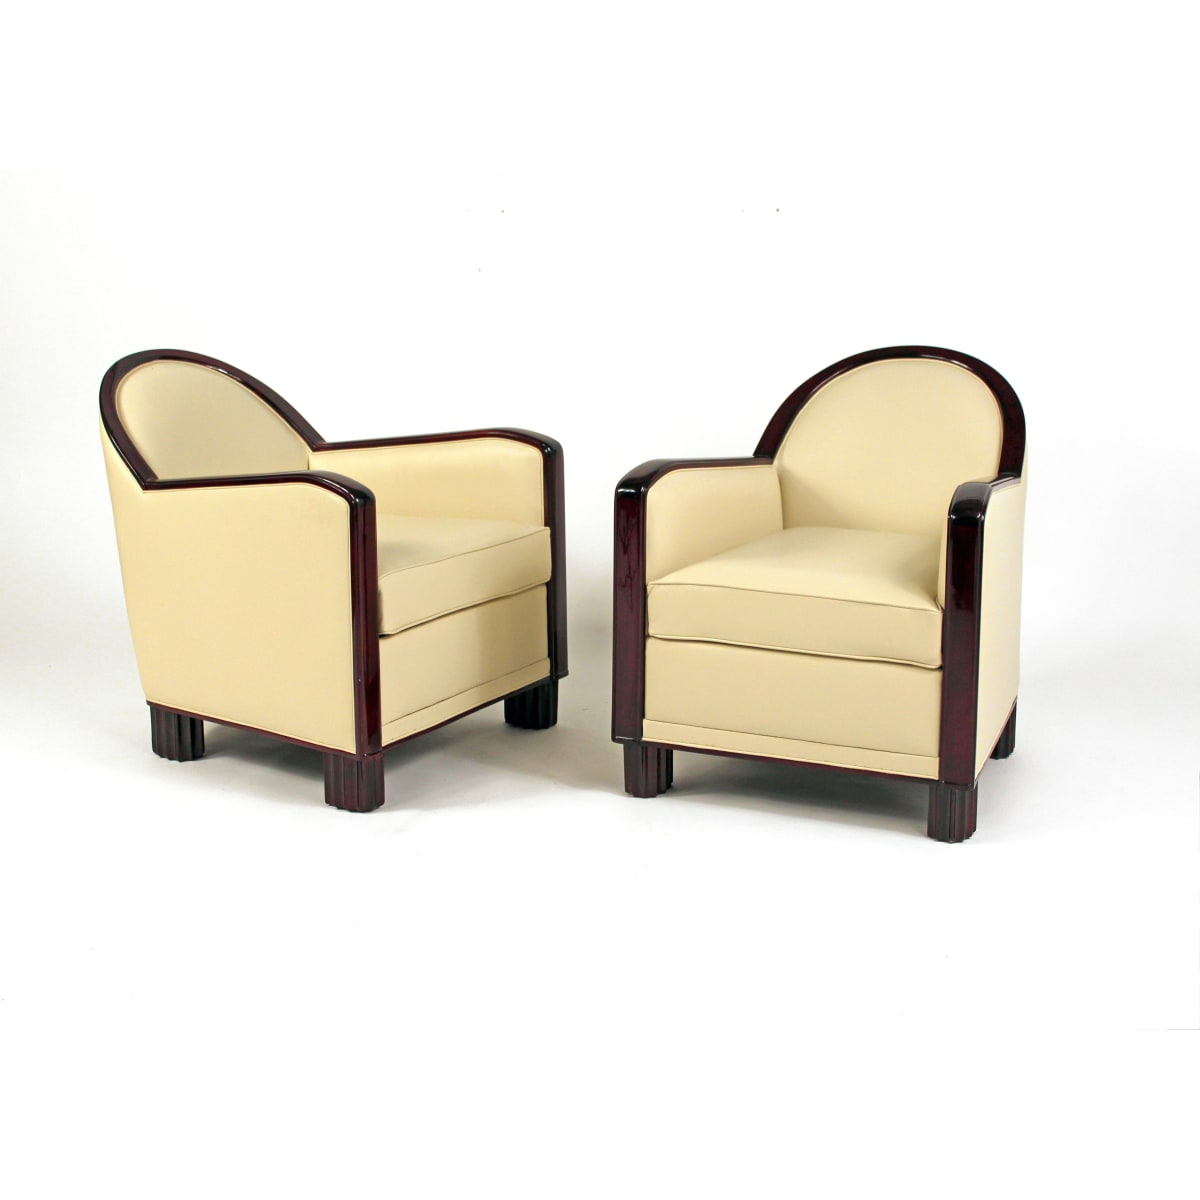 Decoration Interieure Modernes (DIM) Pair of Art Deco Club Chairs, 1930 Height 30 in. x Width 26.50 in. x Depth 30 in